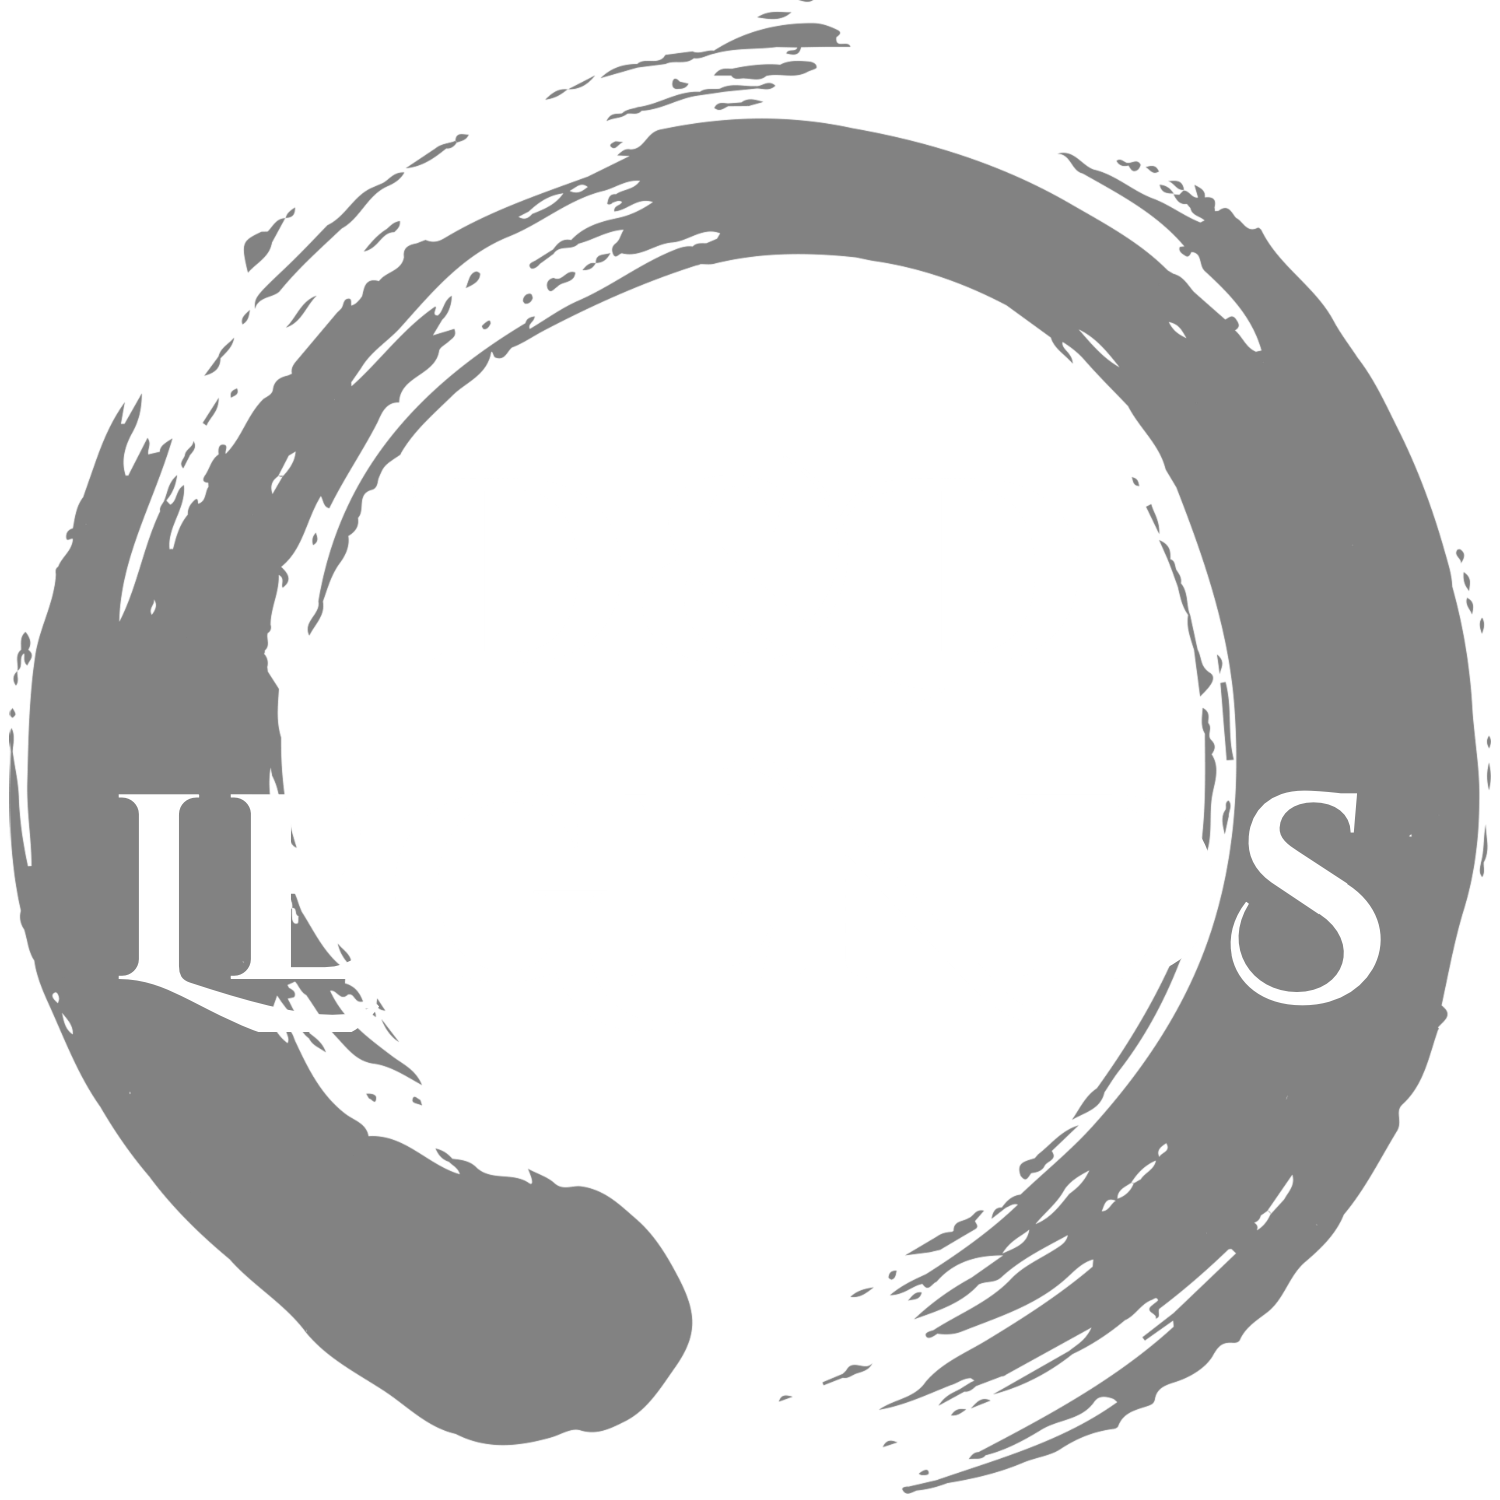 D&D LEGENDS